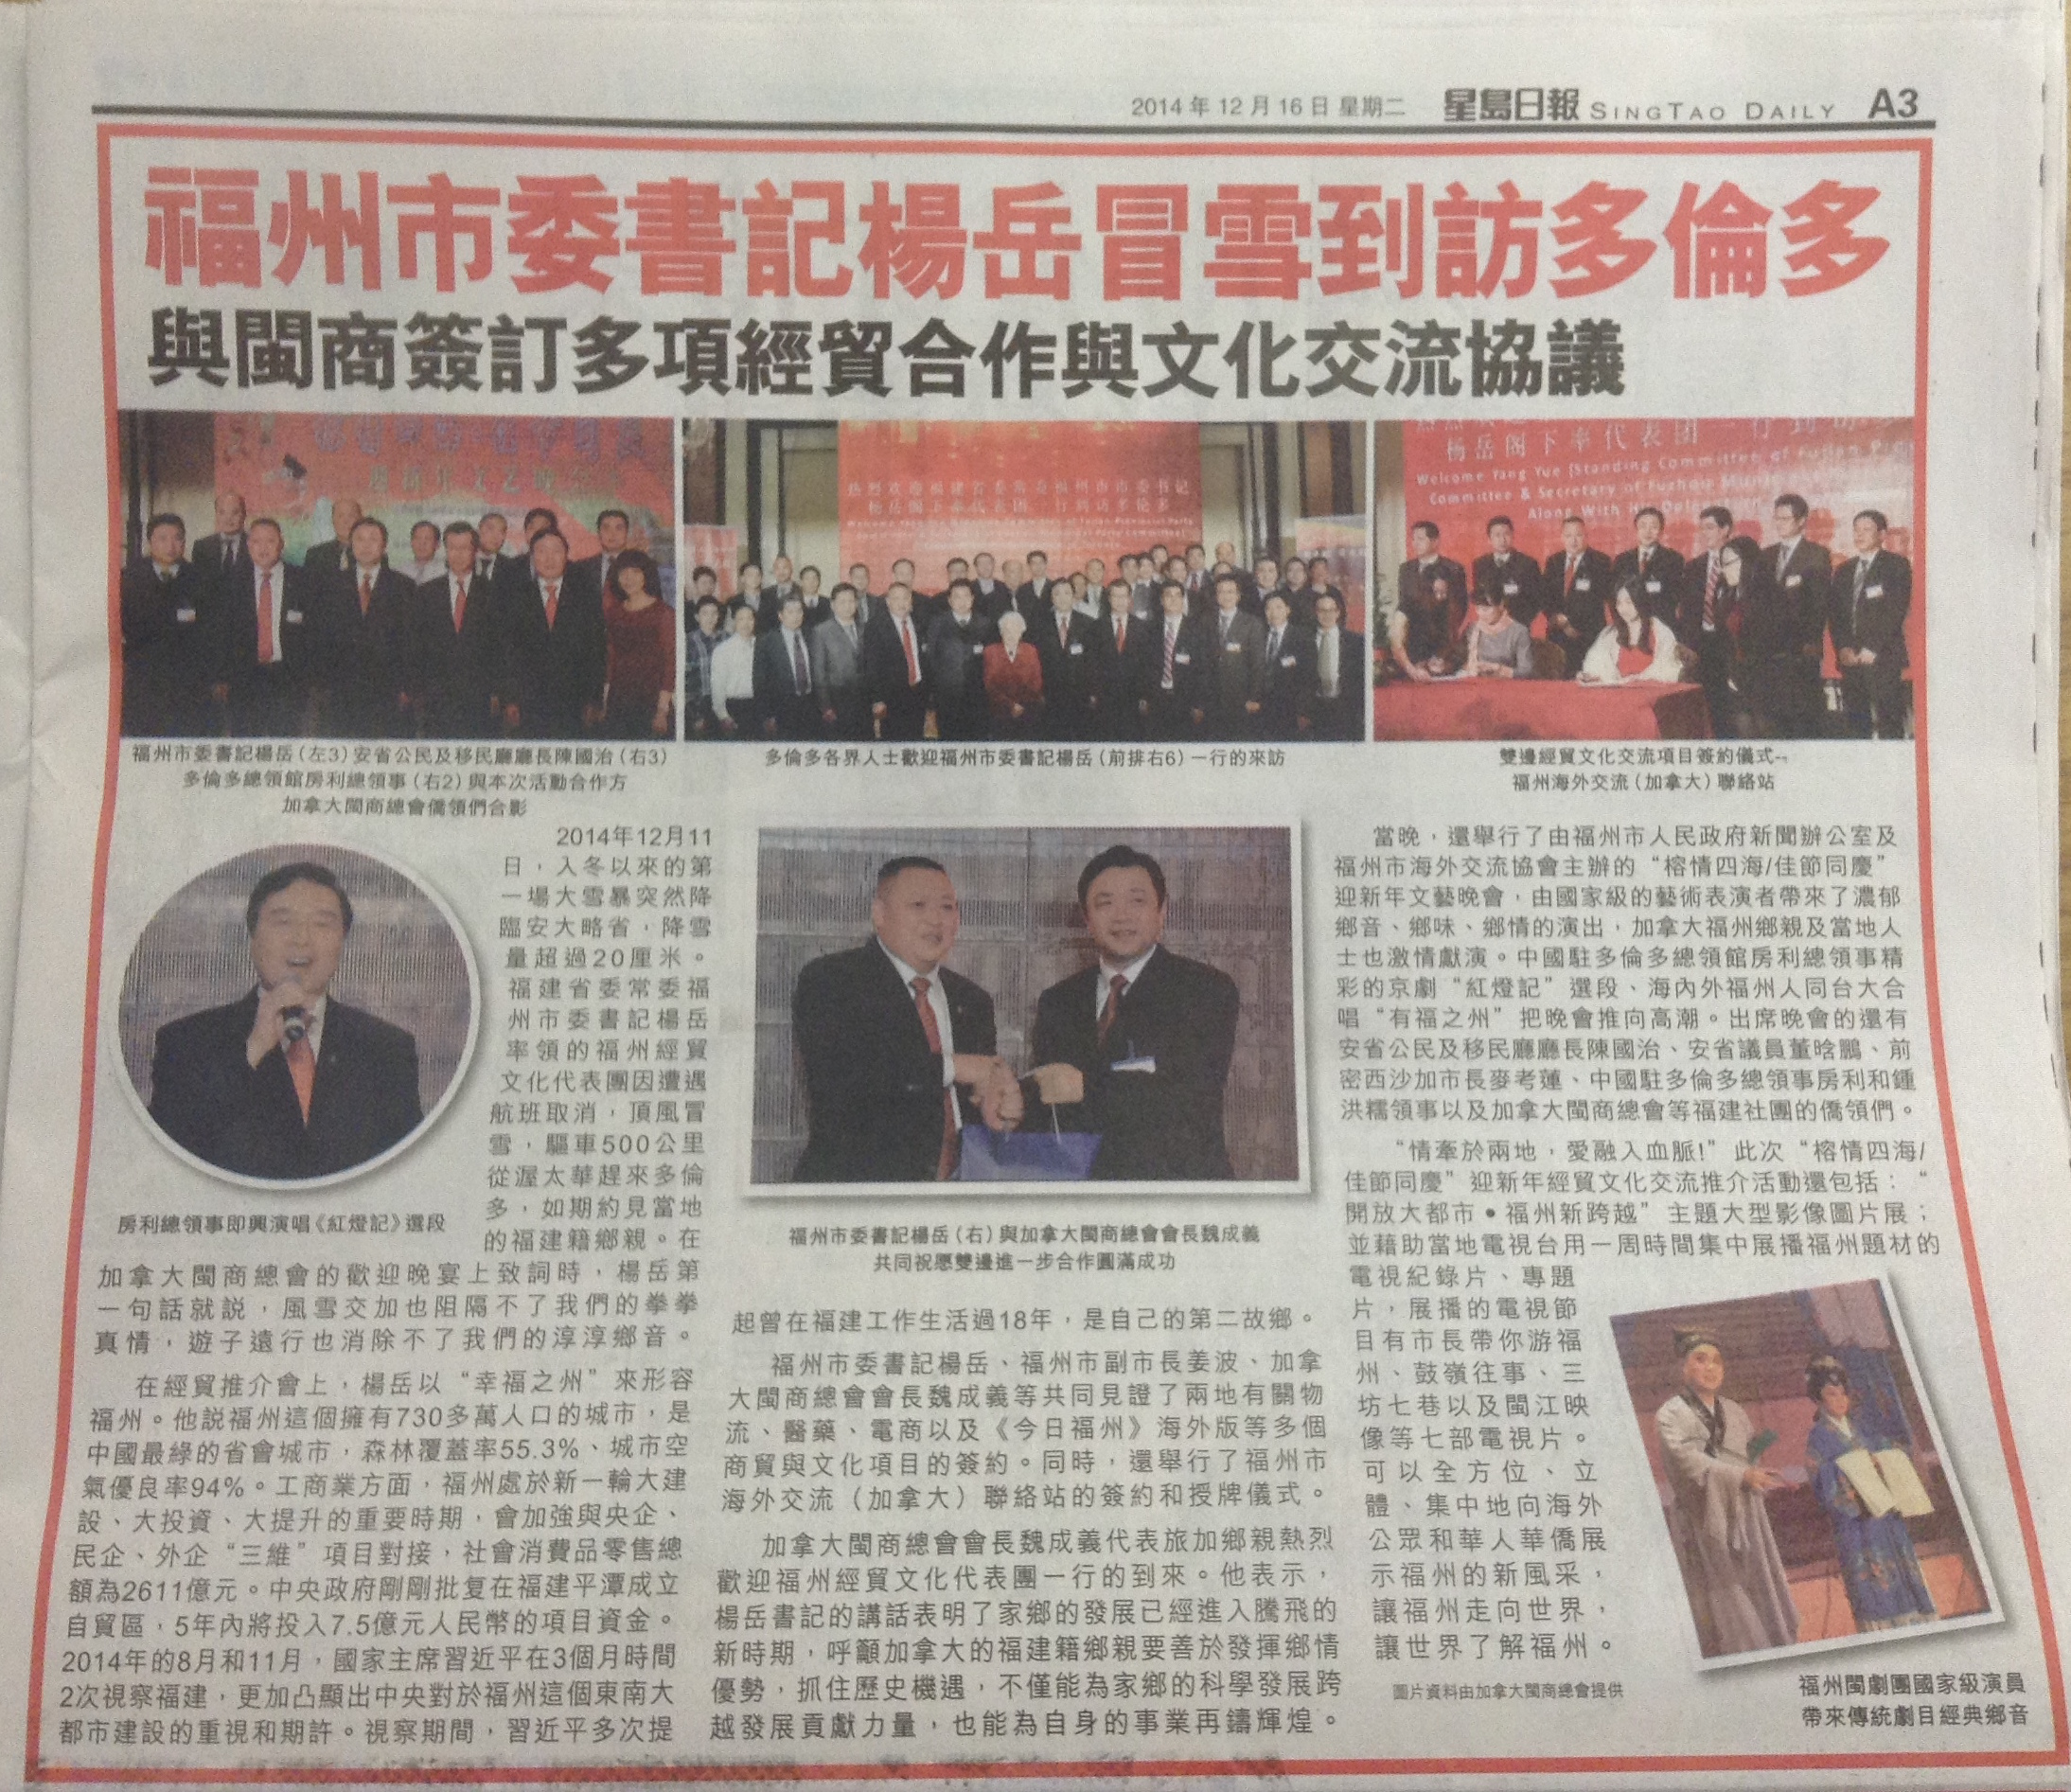 Photo shows article published on Dec. 16, 2014, in the Canadian edition of Sing Tao Daily reporting on a ceremony to welcome Fuzhou City Communist Party Secretary General Yang Yue, during which the re-launch of the Chinese Canadian Post was celebrated. The ceremony was attended by Ontario cabinet minister Michael Chan, CTCCO president Wei Chengyi, Fuzhou City Communist Party Committee Secretary General Yang Yue, and the Chinese Consul General in Toronto Fang Li.